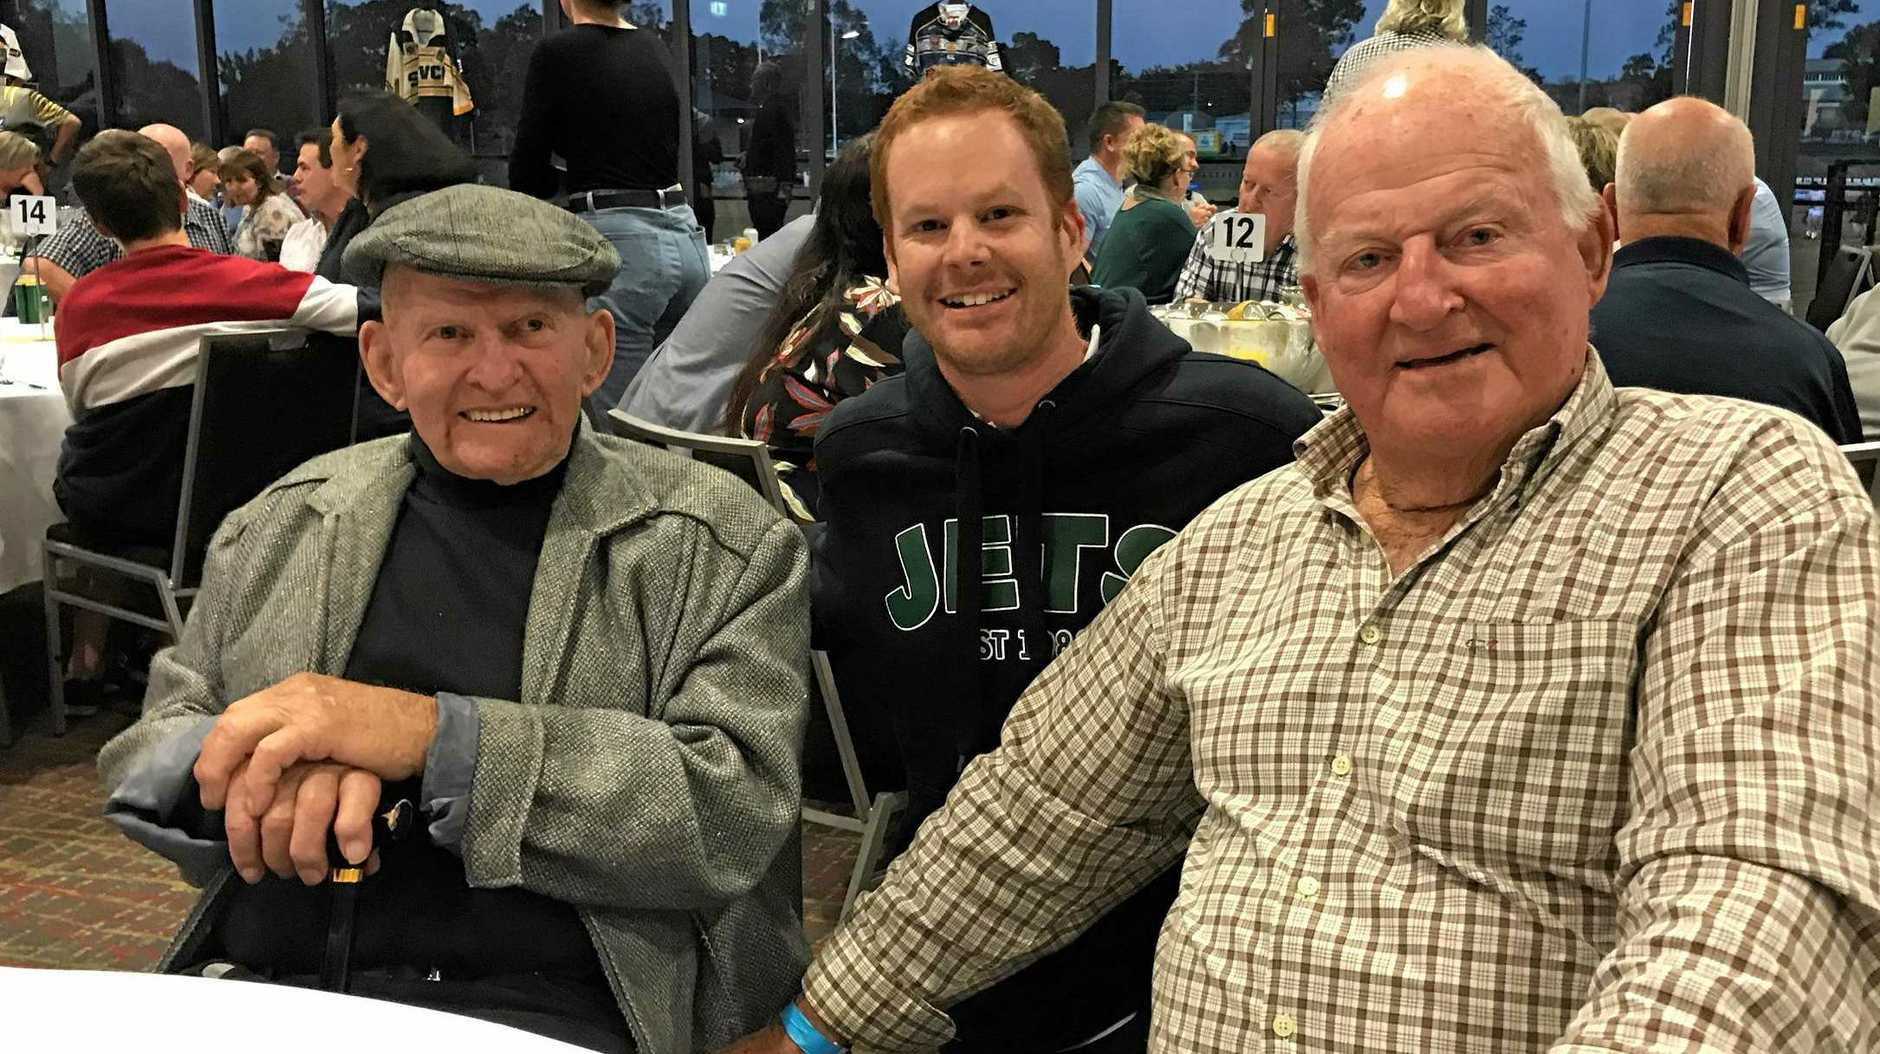 QT rugby league columnist Michael Nunn was delighted to catch up with two Ipswich-bred greats Gary Parcell and Noel Kelly at the latest Jets Old Boys function. Parcell and Kelly were two-thirds of the Australian team's front row in 1960.